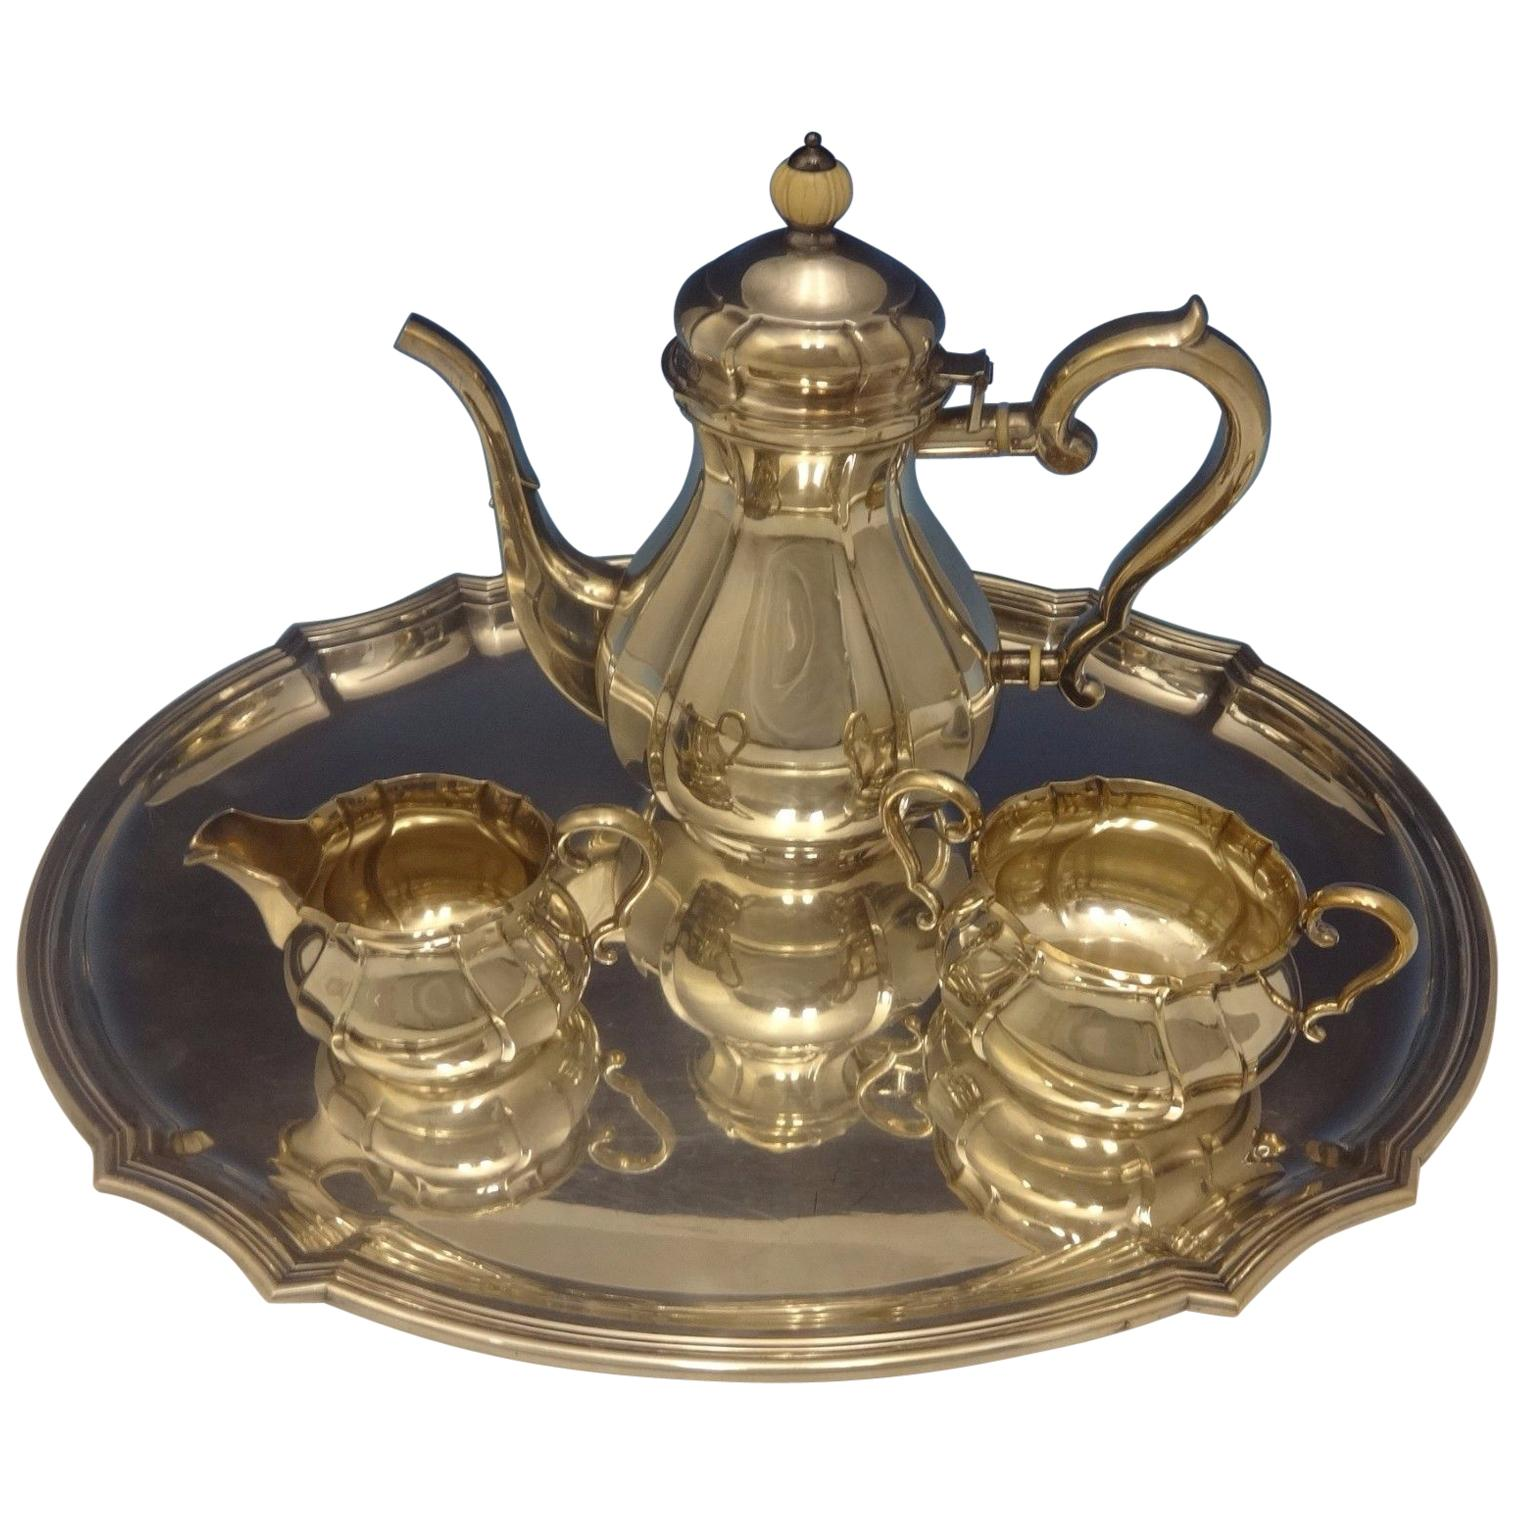 C.C. Hermann Danish Sterling Silver Tea Set of 3 Pieces with Tray